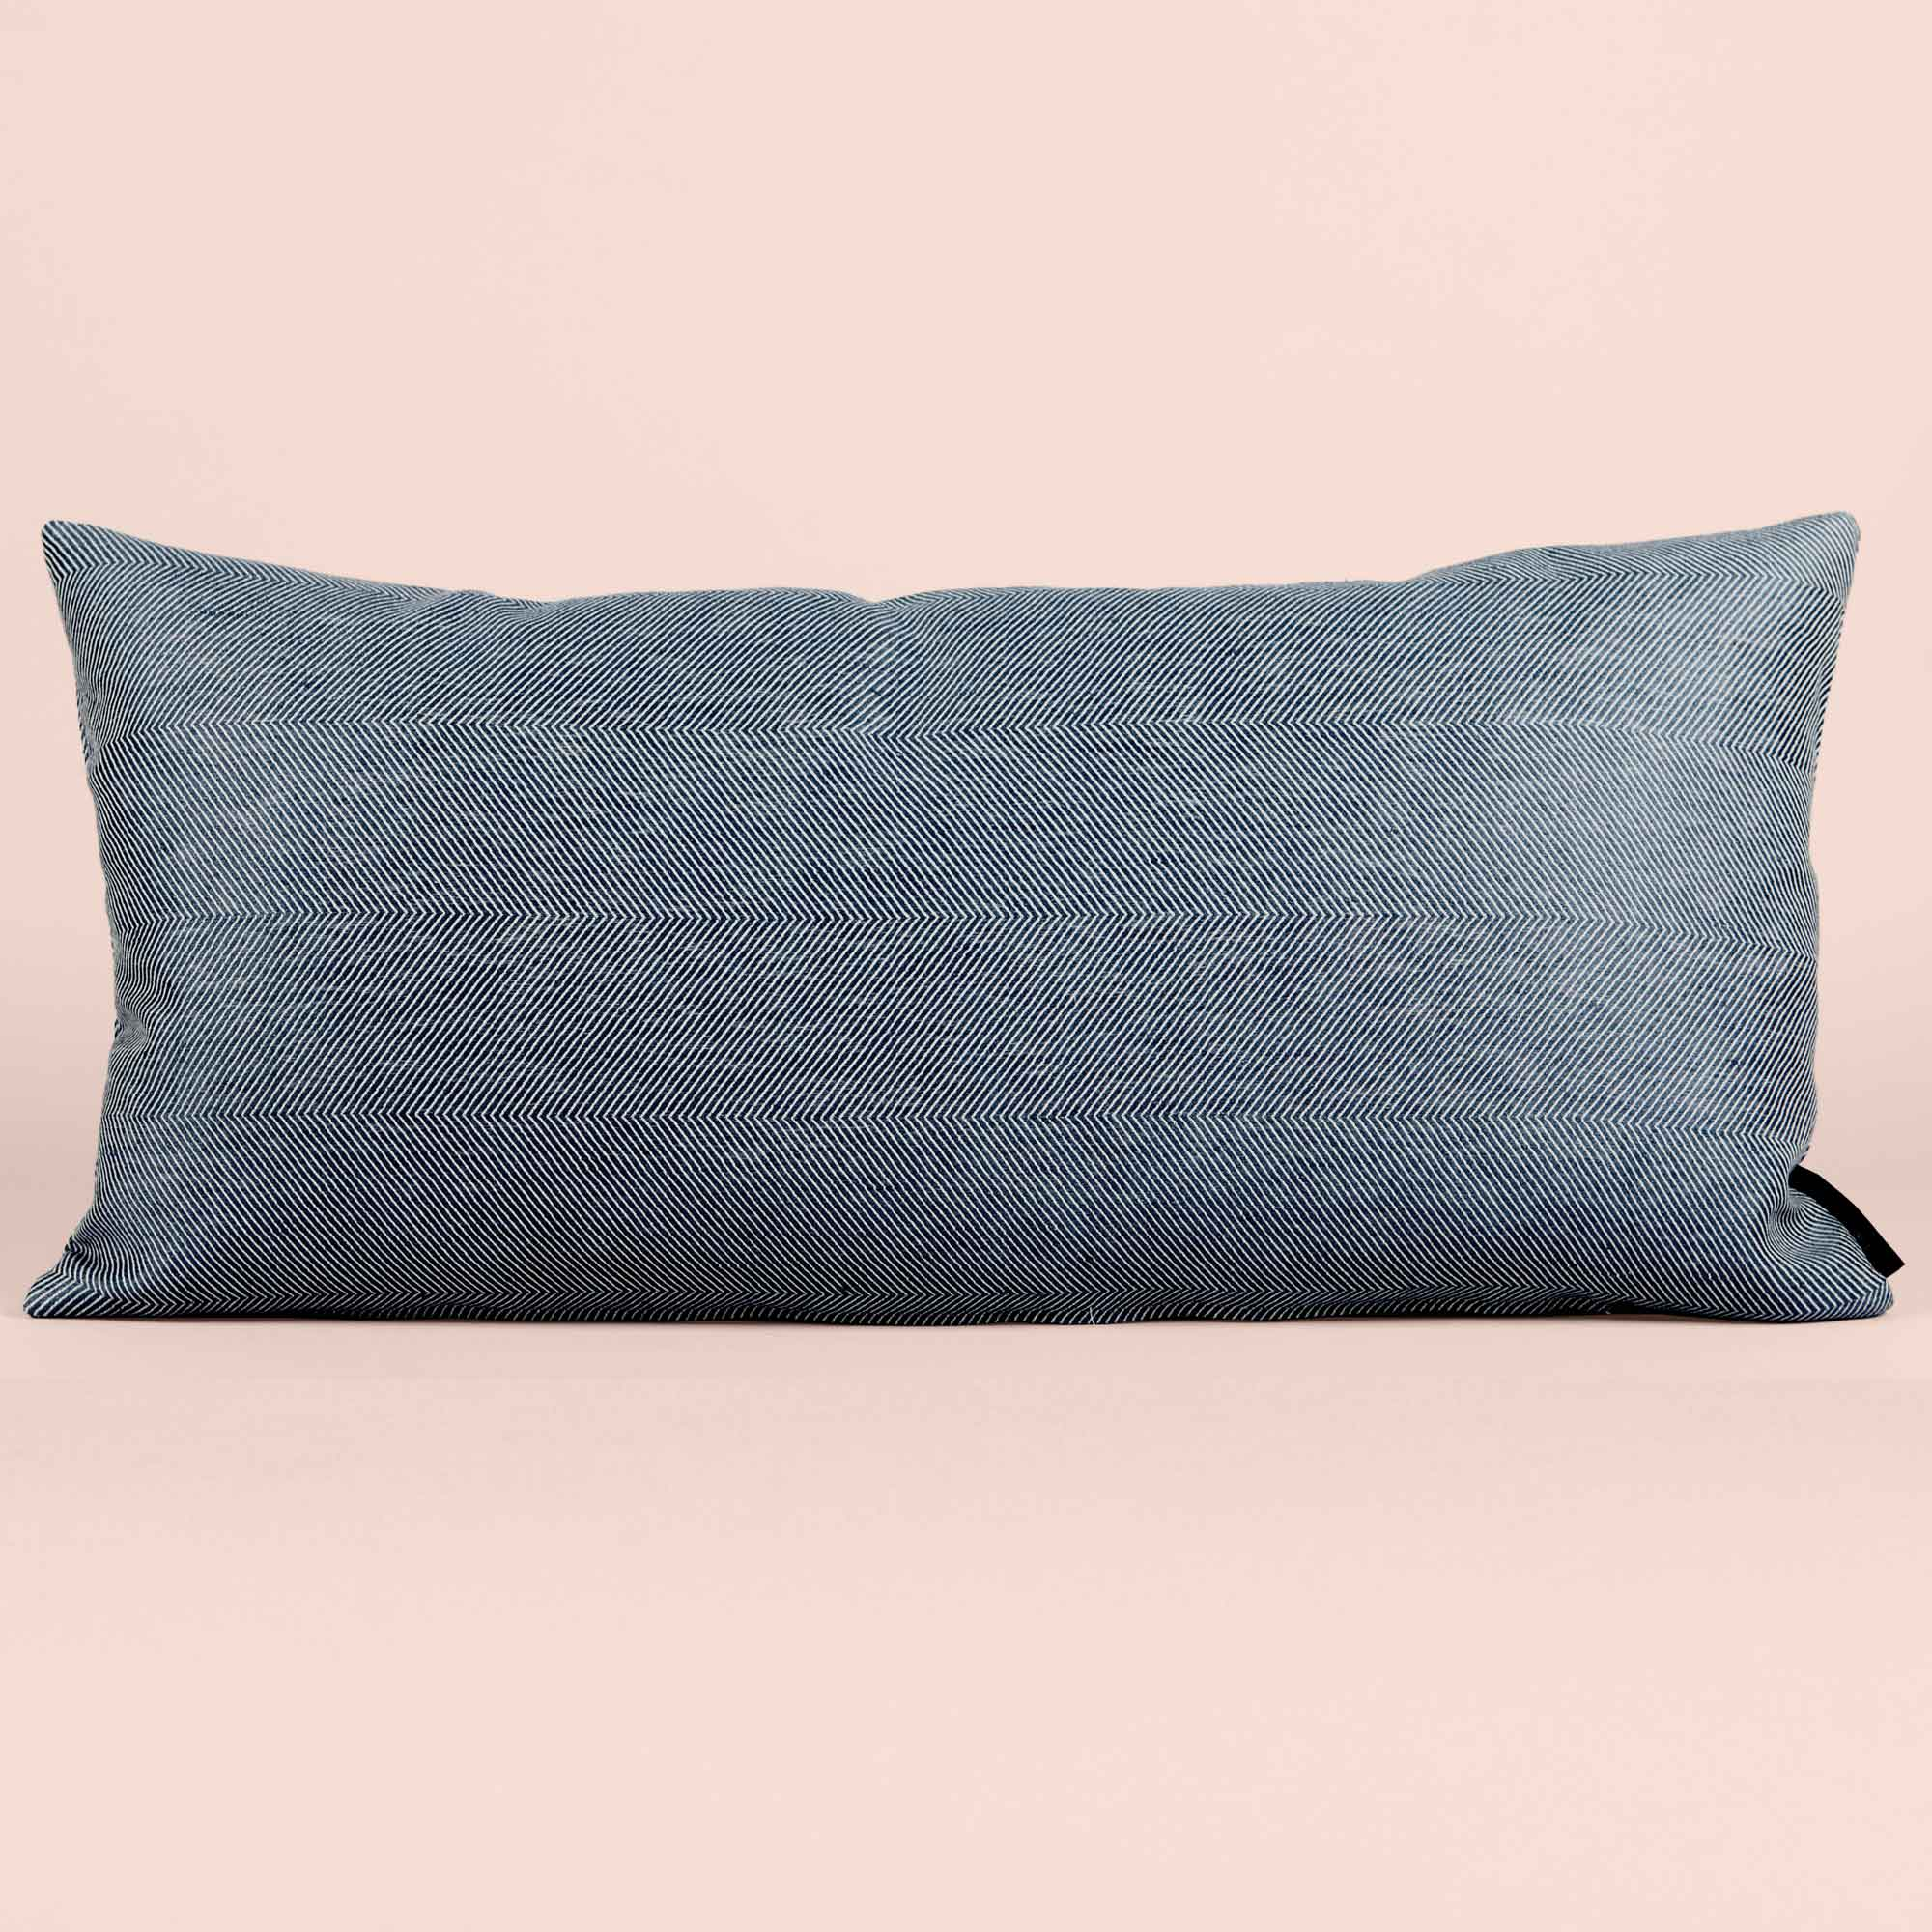 Rectangular cushion linen/cotton indigo blue design by Anne Rosenberg, RosenbergCph